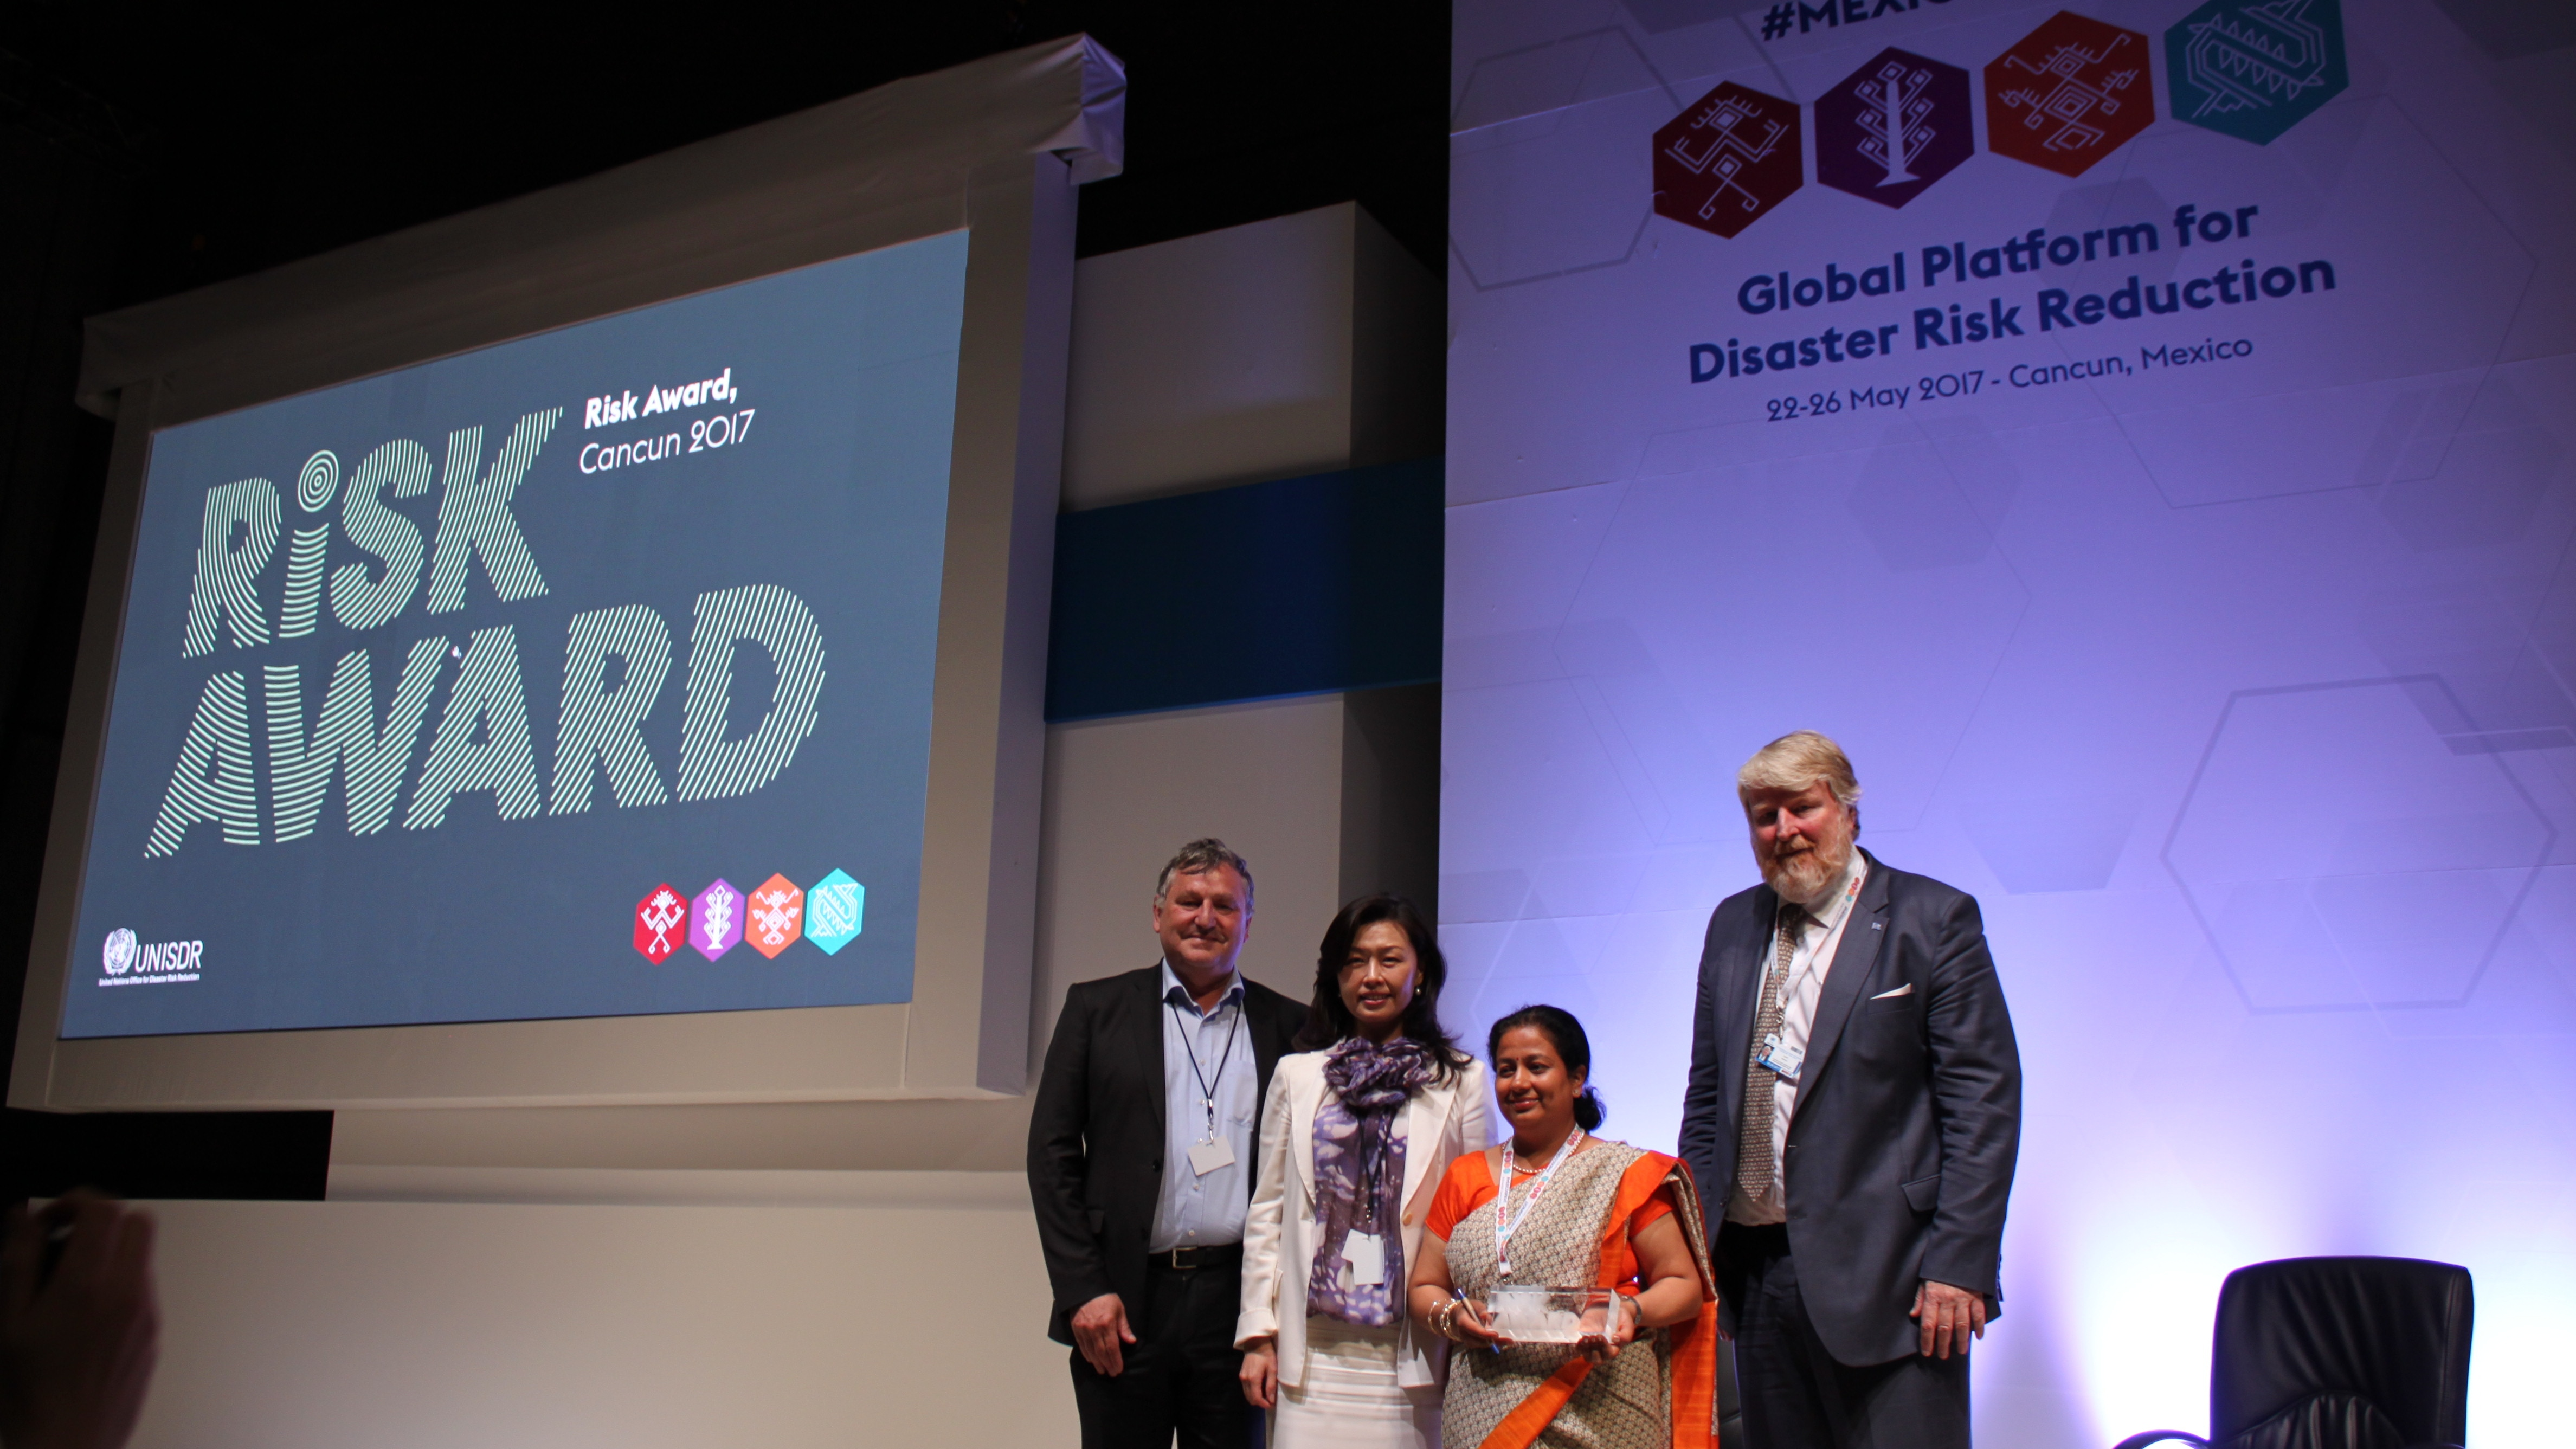 Thomas Loster (Munich Re Foundation) and Sandra Wu (RISK Award jury member) handed over the trophy to Apsara Pandey. The session was hosted by UNISDR, represented by David Stevens (right).